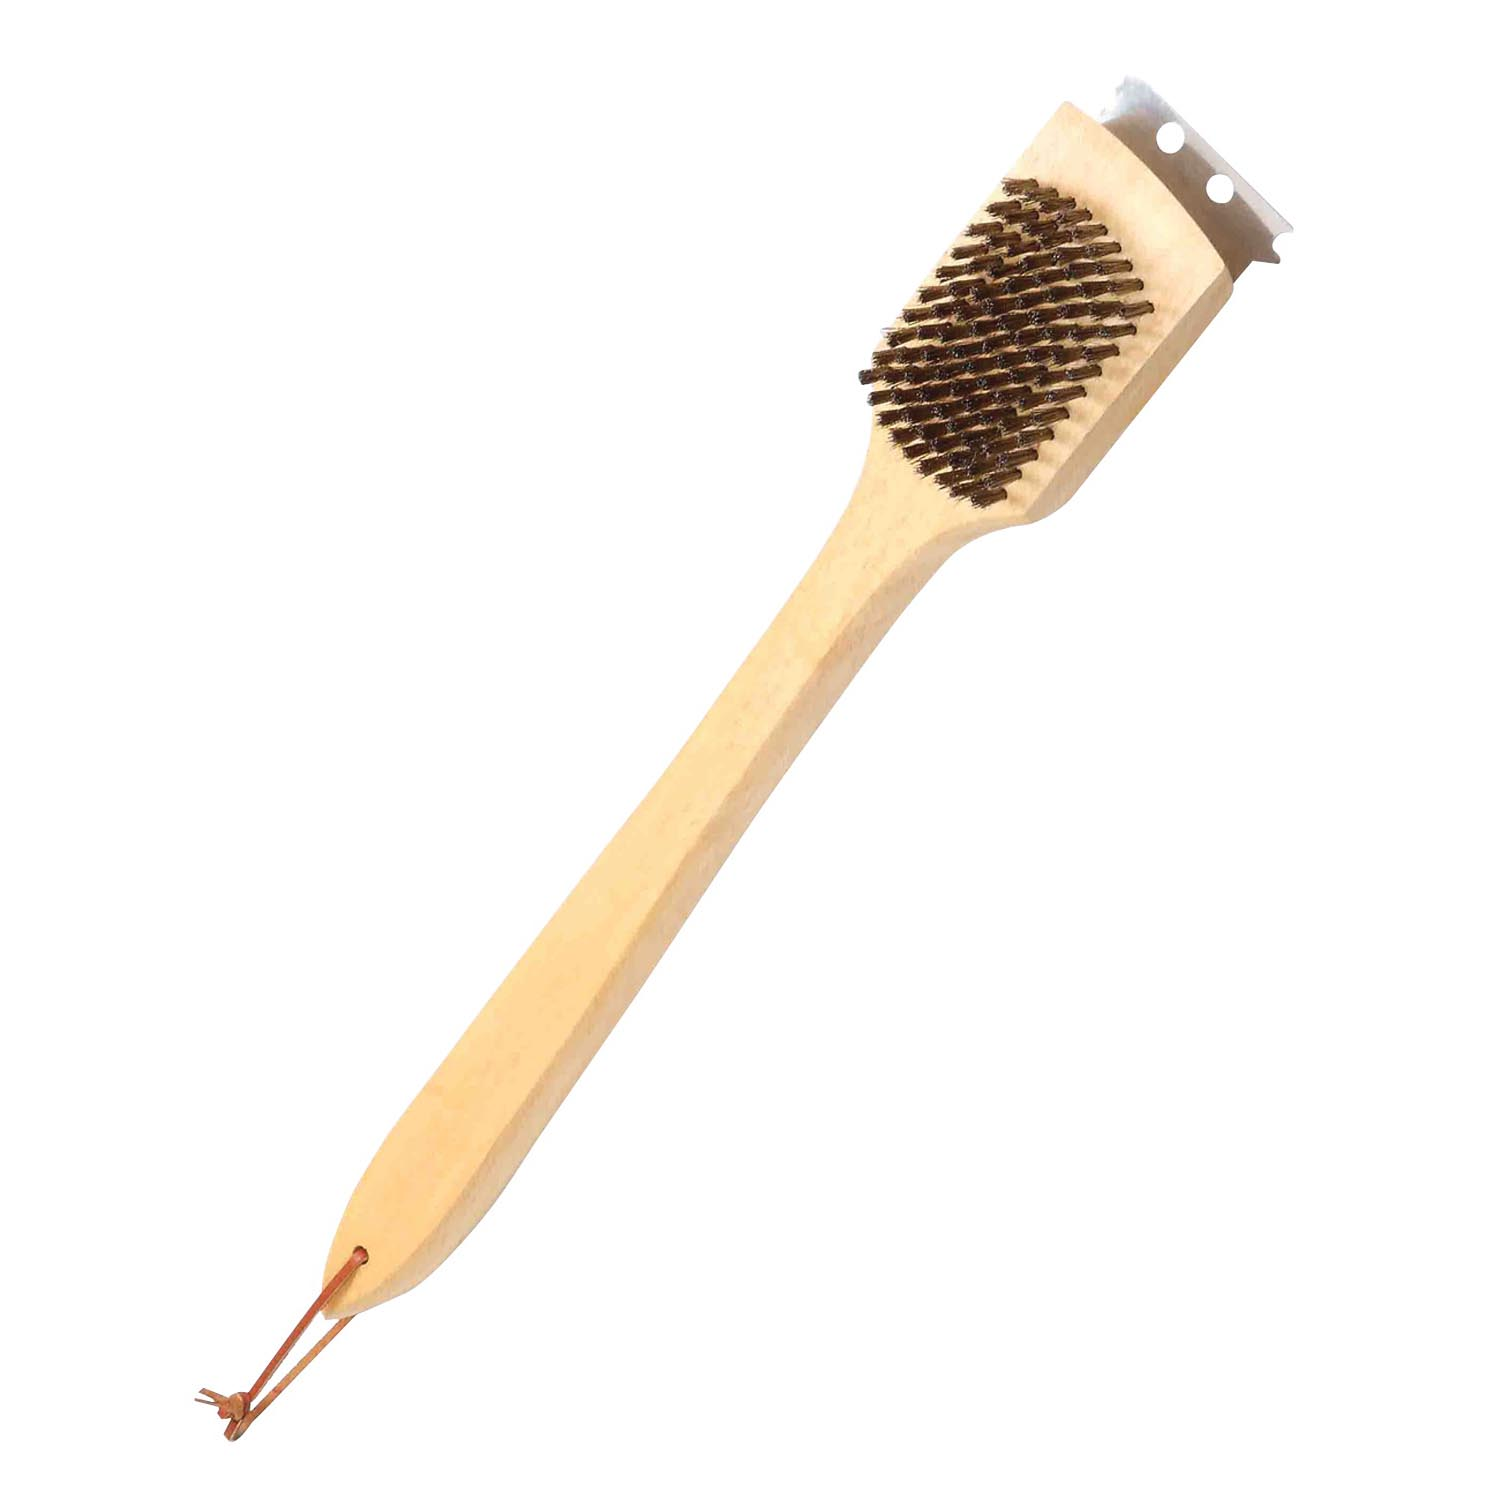 Picture of Omaha SP2483L Grill Brush, 3-1/4 in L Brush, 2 in W Brush, Stainless Steel Bristle, Stainless Steel Bristle, 18 L